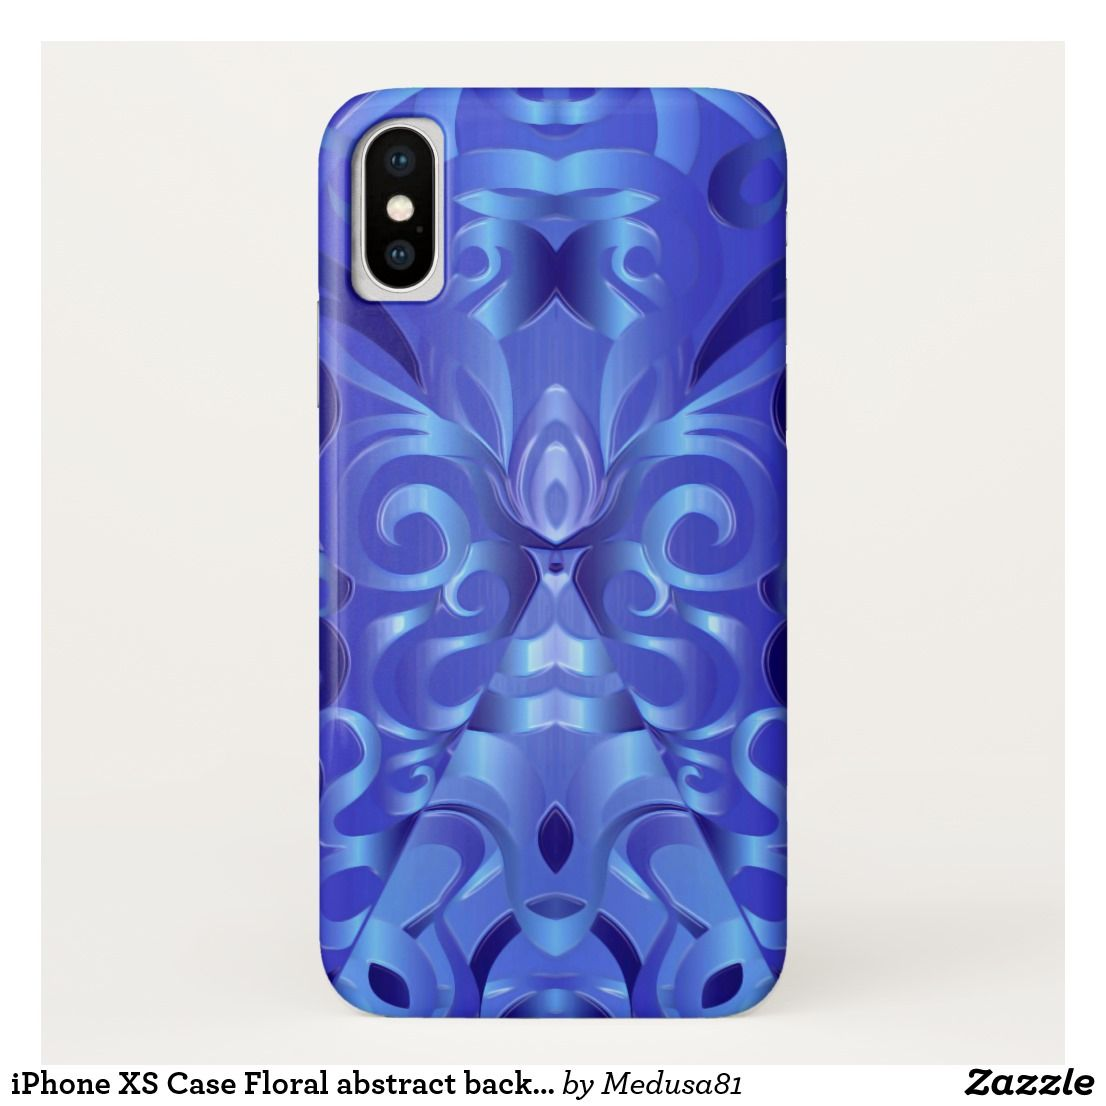 IPhone XS Case Floral Abstract Background